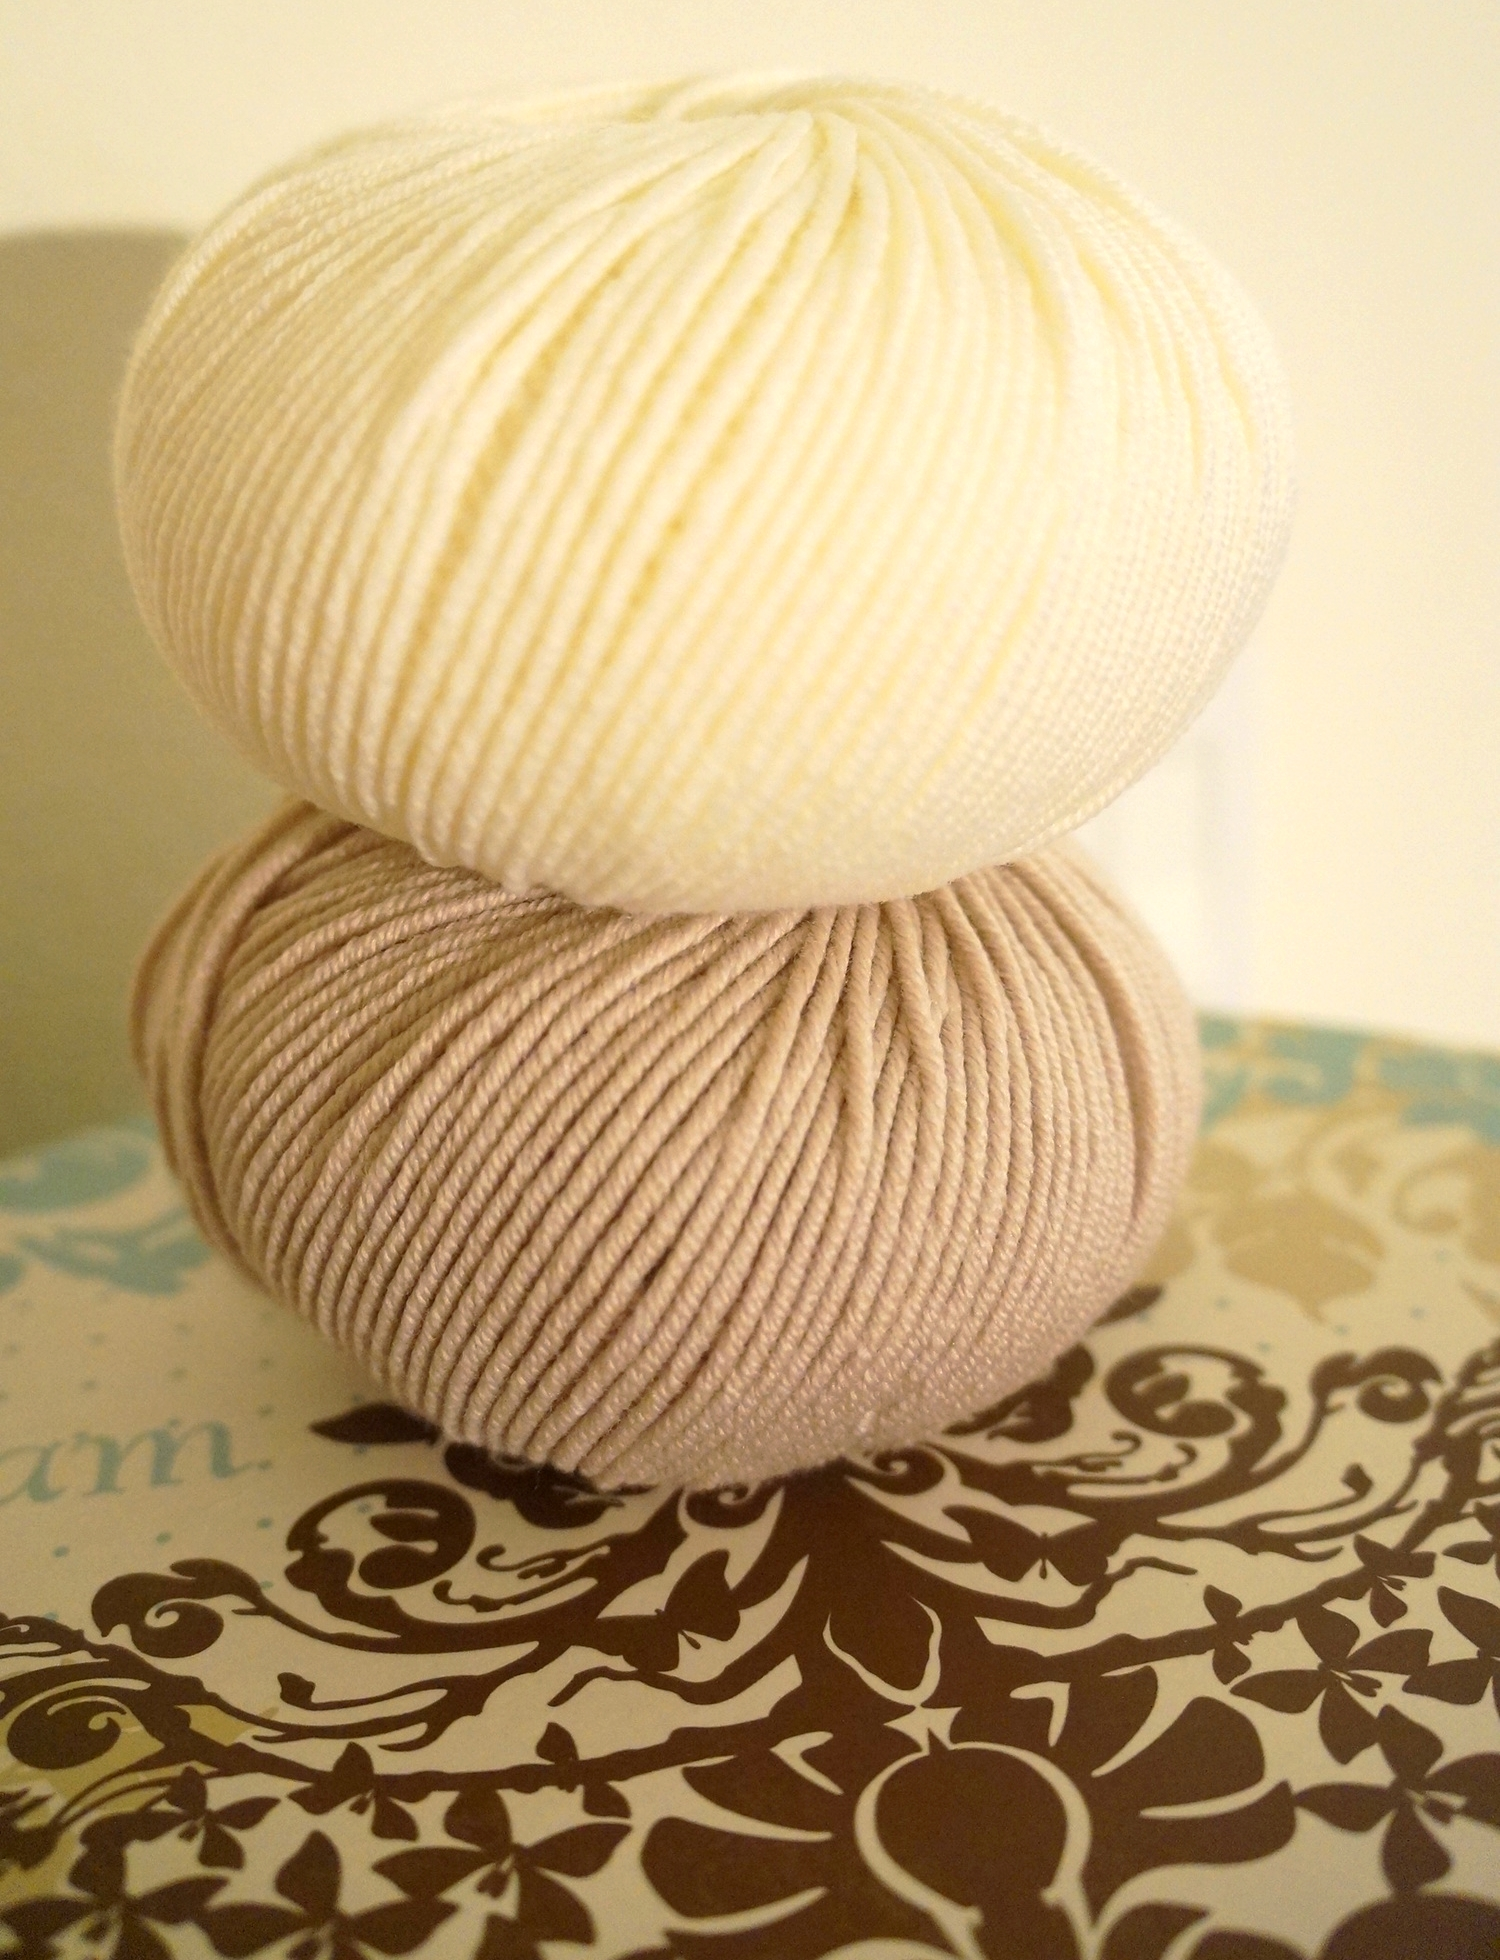 Australian Superfine Merino by Cleckheaton, in Shade 21 Cardboard and Shade 53 Cream